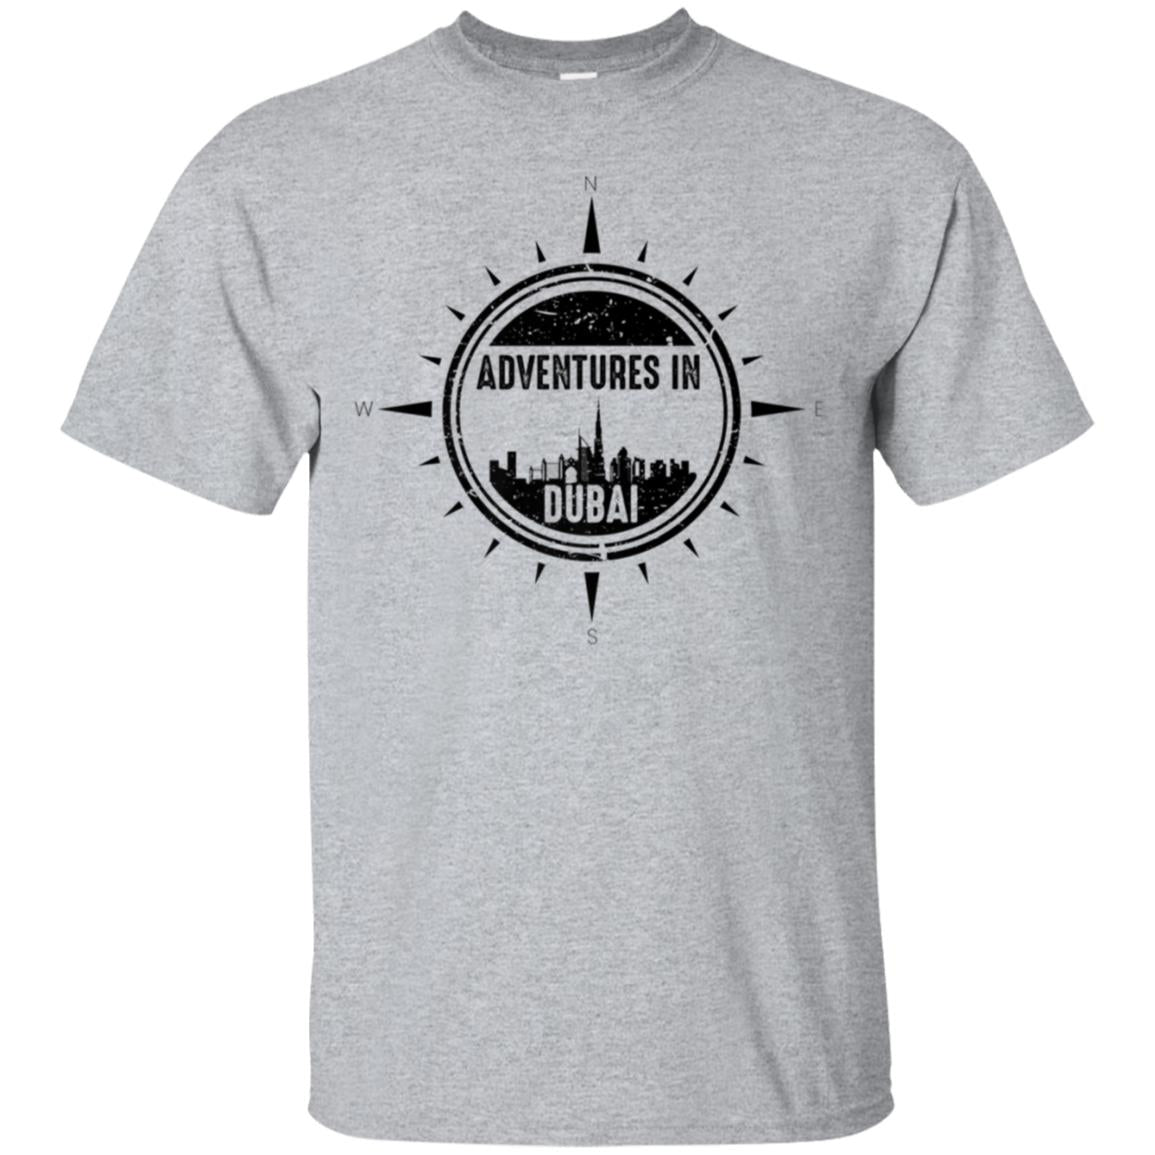 Adventures in Dubai unisex vacay travel shirt 99promocode